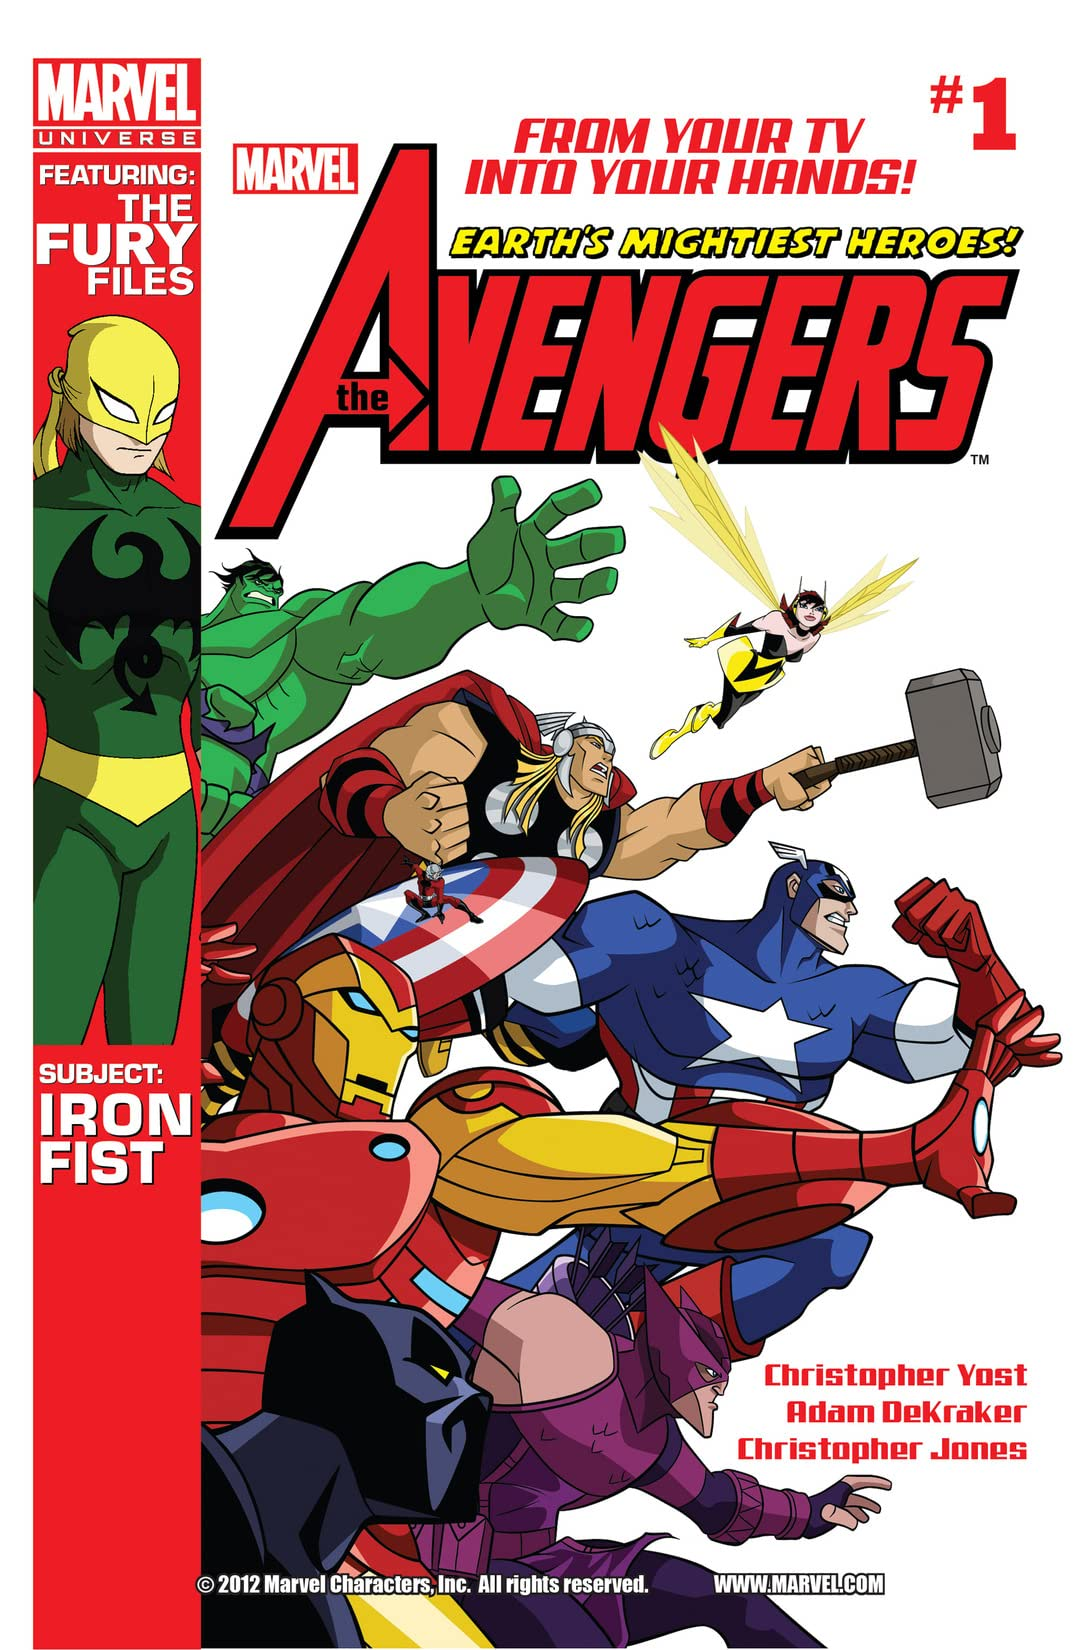 Marvel Universe Avengers: Earth's Mightiest Heroes (2012-2013) #1